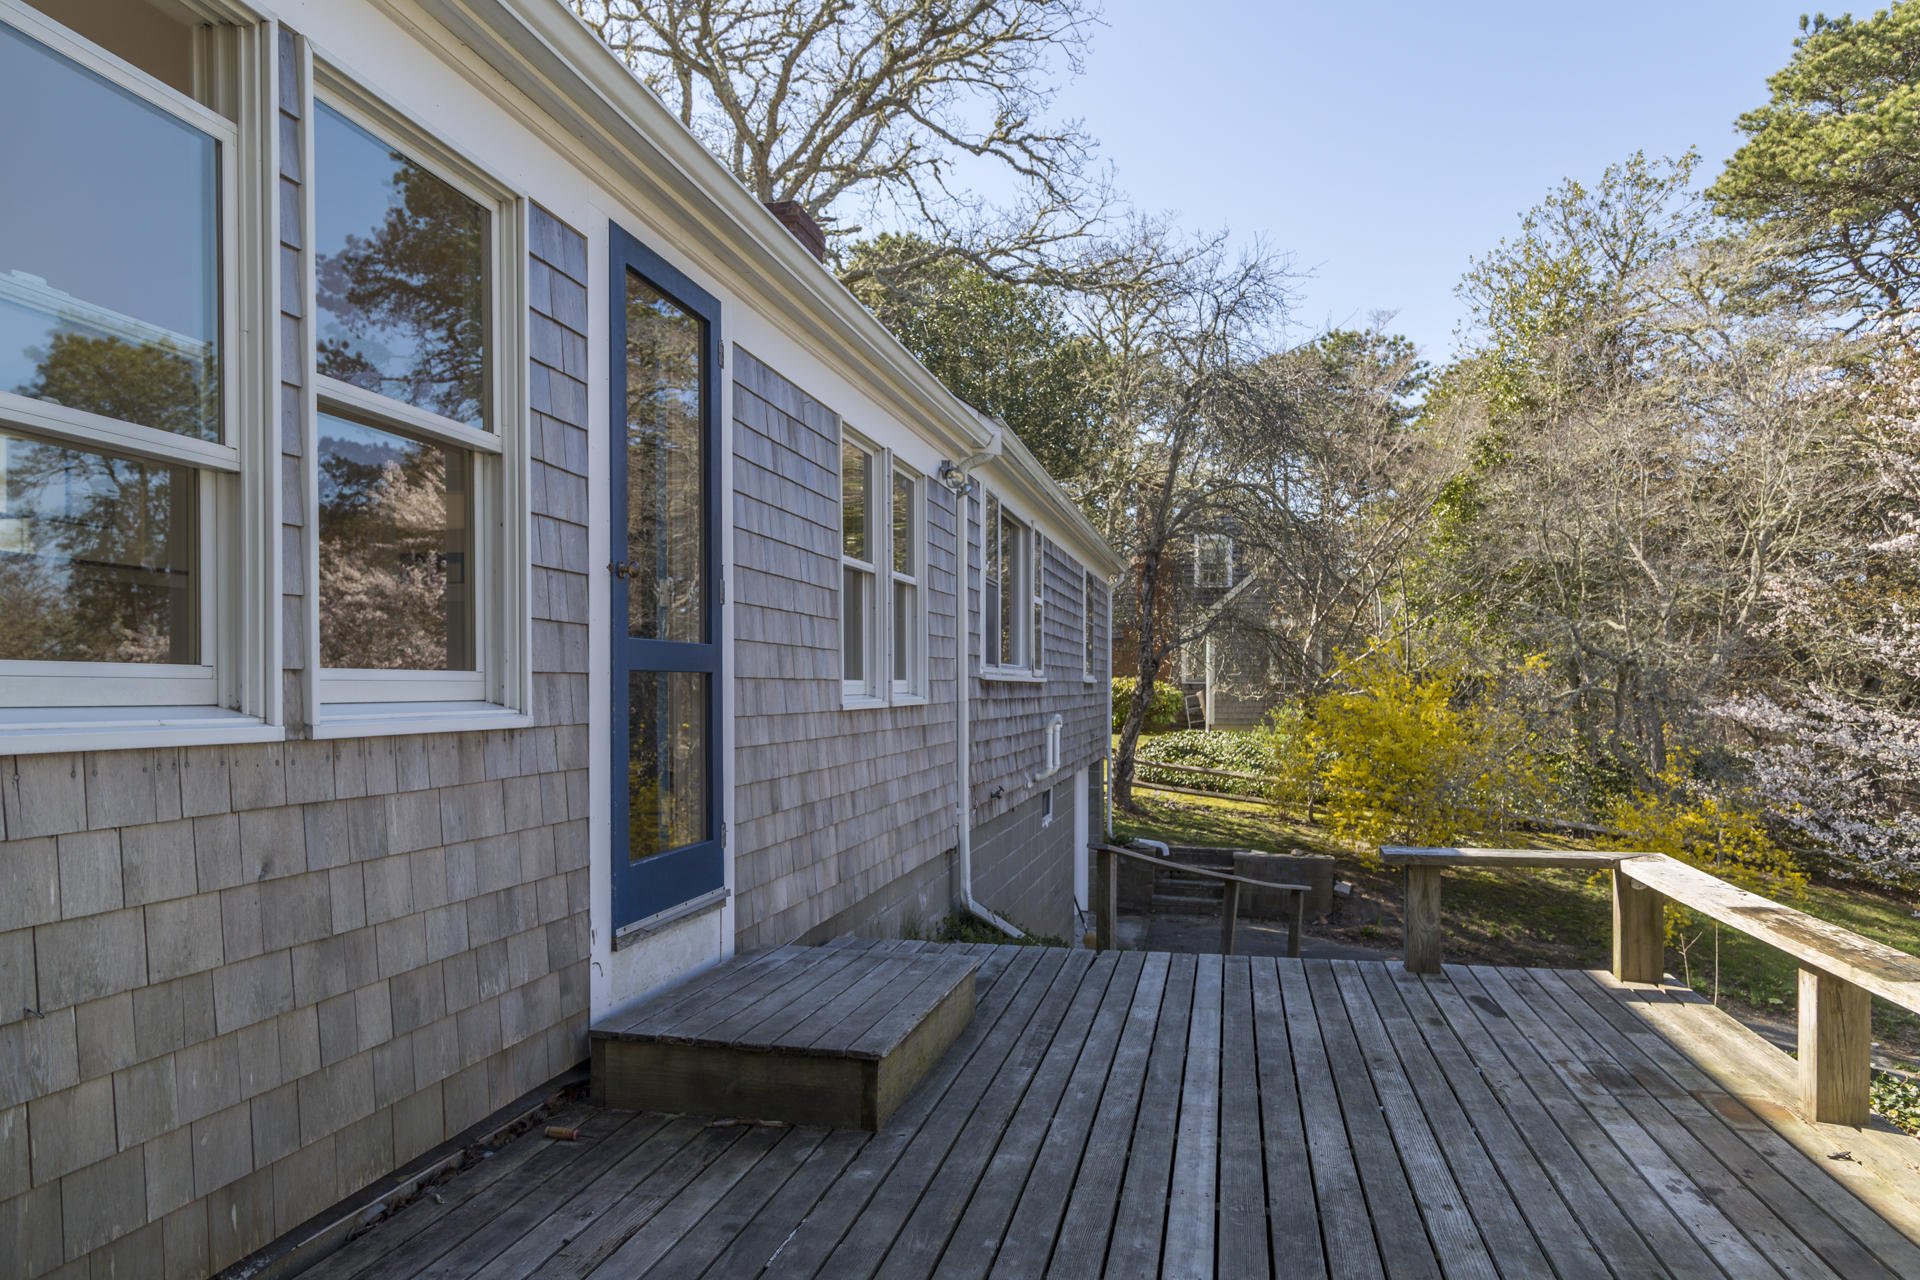 46 Meadow Brook Road, North Chatham MA, 02650 - slide 3